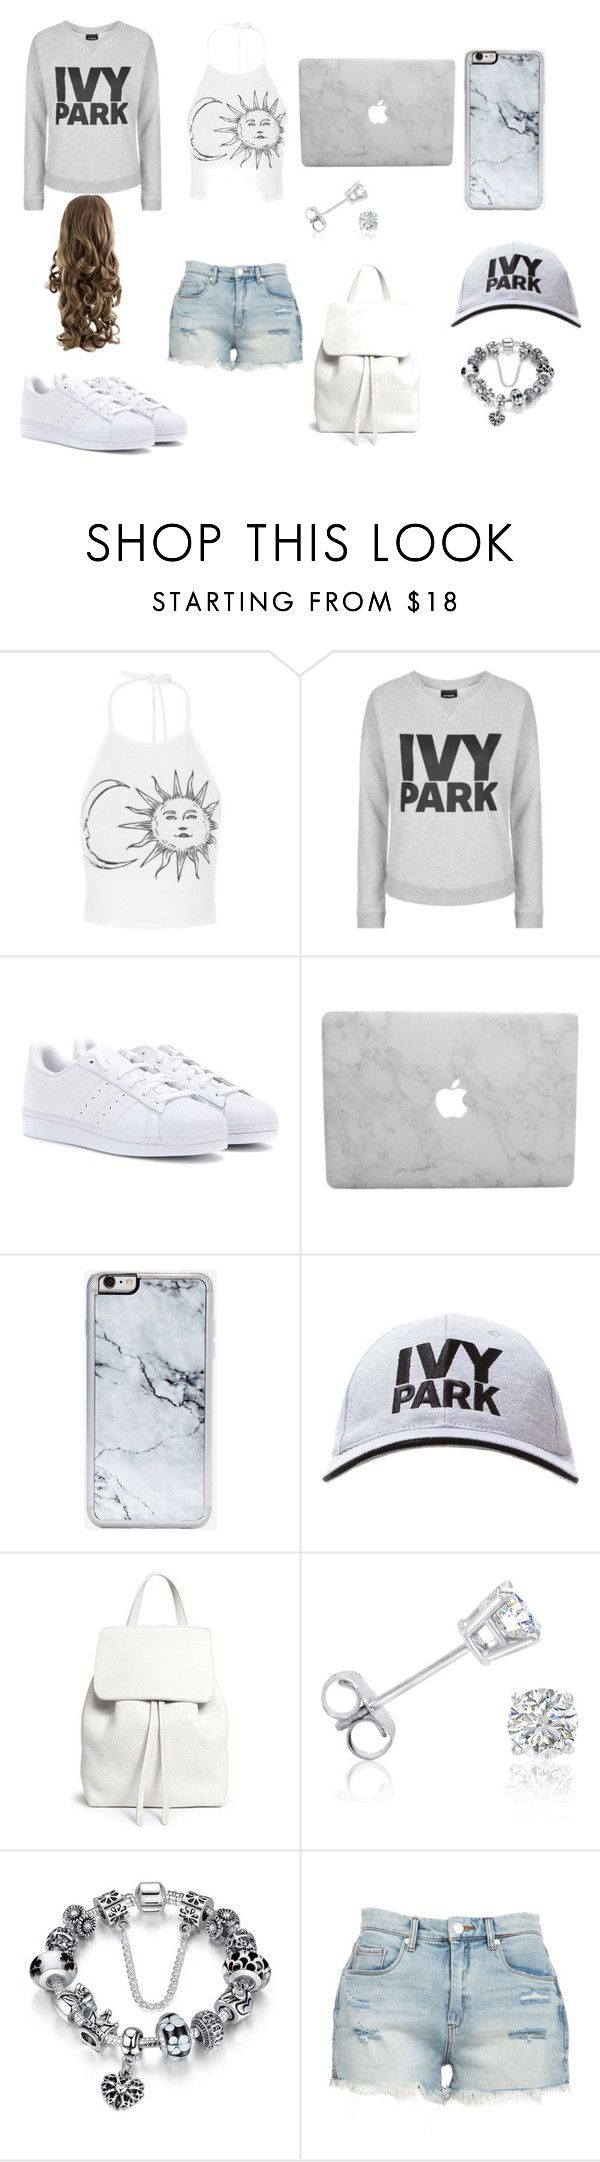 """Outfit 9"" by sarahcb2002 on Polyvore featuring Topshop, adidas, Zero Gravity, Ivy Park, Mansur Gavriel, Amanda Rose Collection and BLANKNYC"